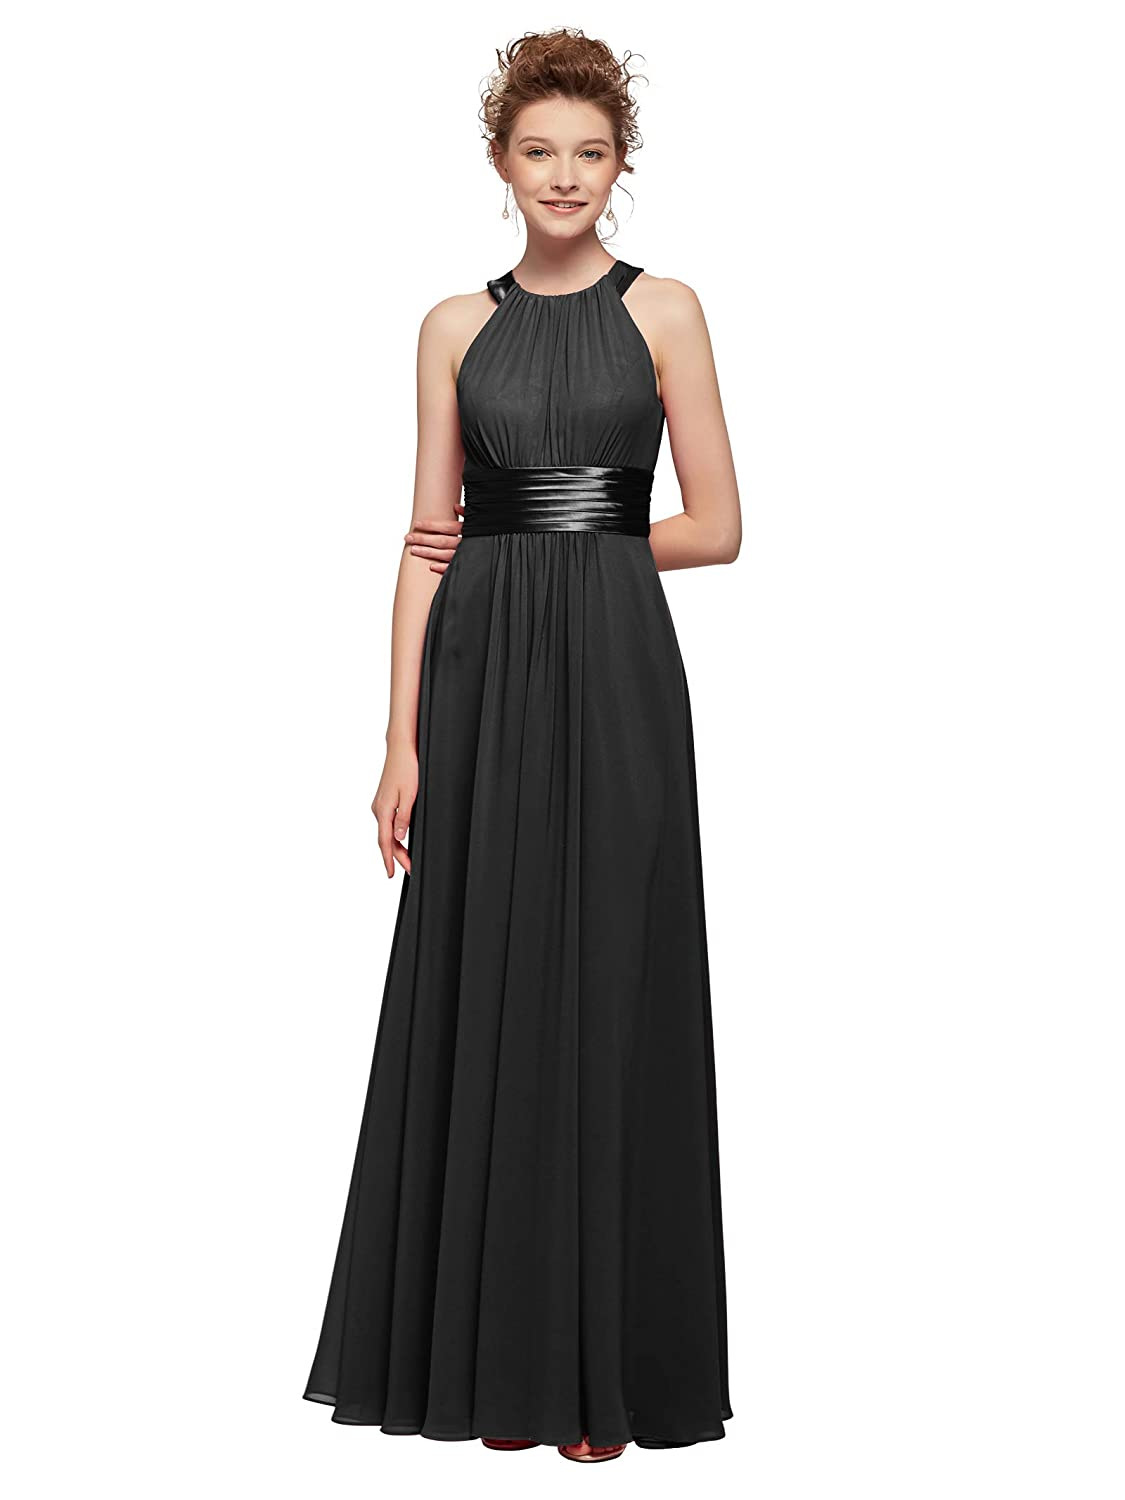 b2f9cad252939 AW Bridal Women's Long Bridesmaid Dresses Jewel Neck Prom Dresses Modest  Chiffon Evening Formal Dresses